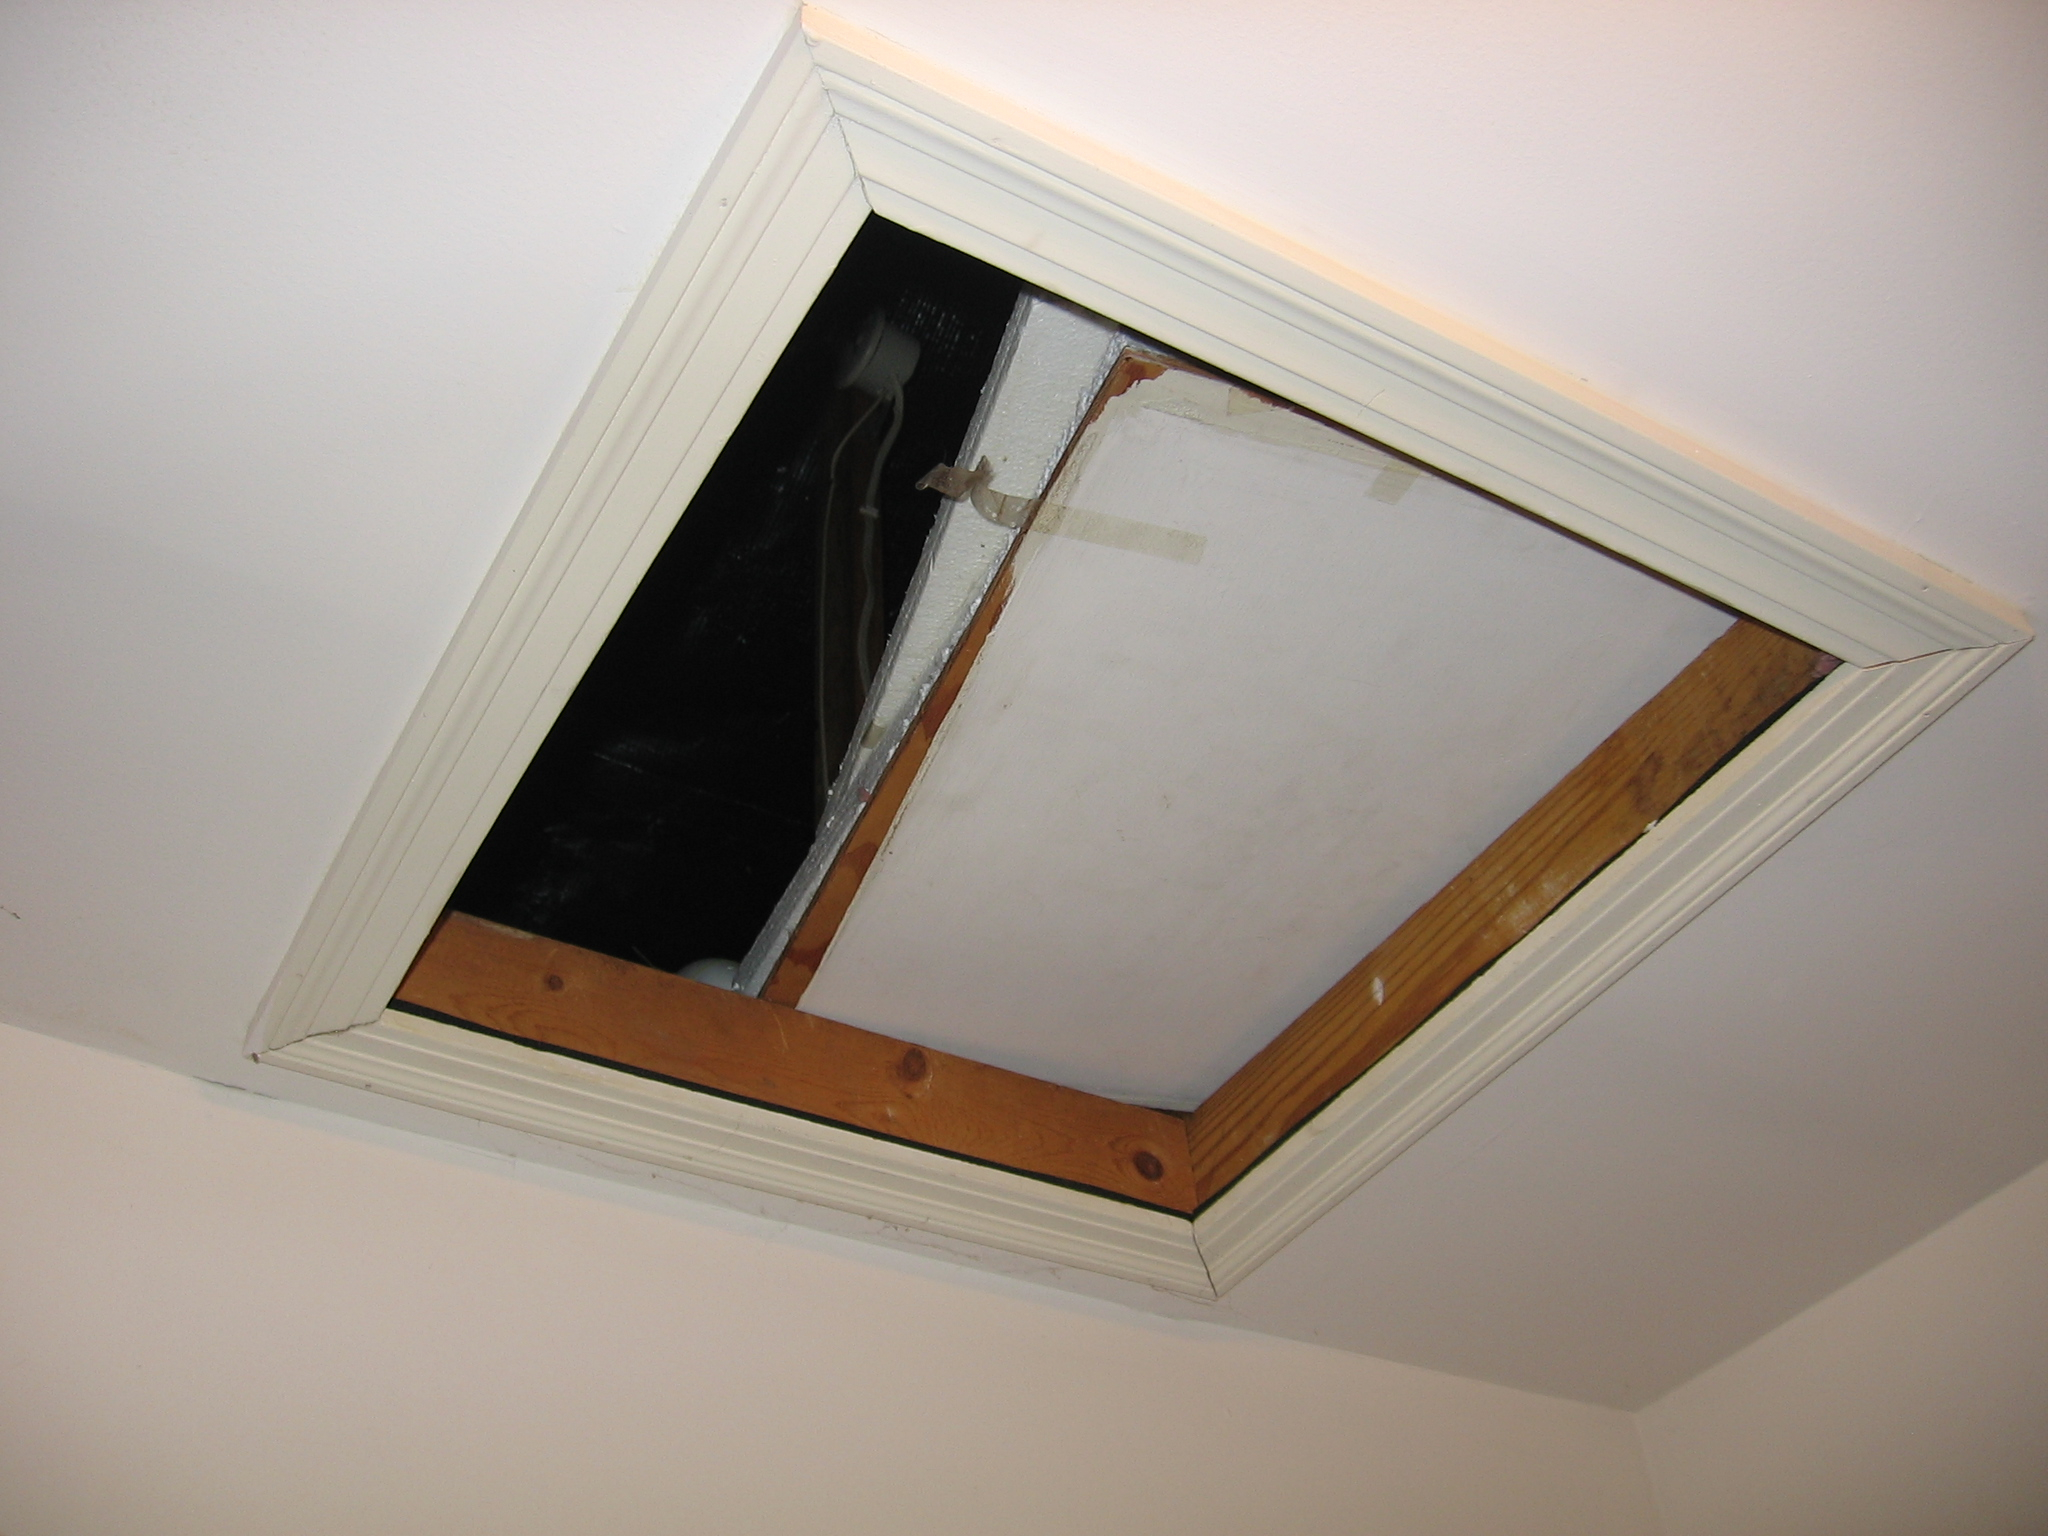 Attic Tent Loft Hatch Insulation Cover Attic Ideas